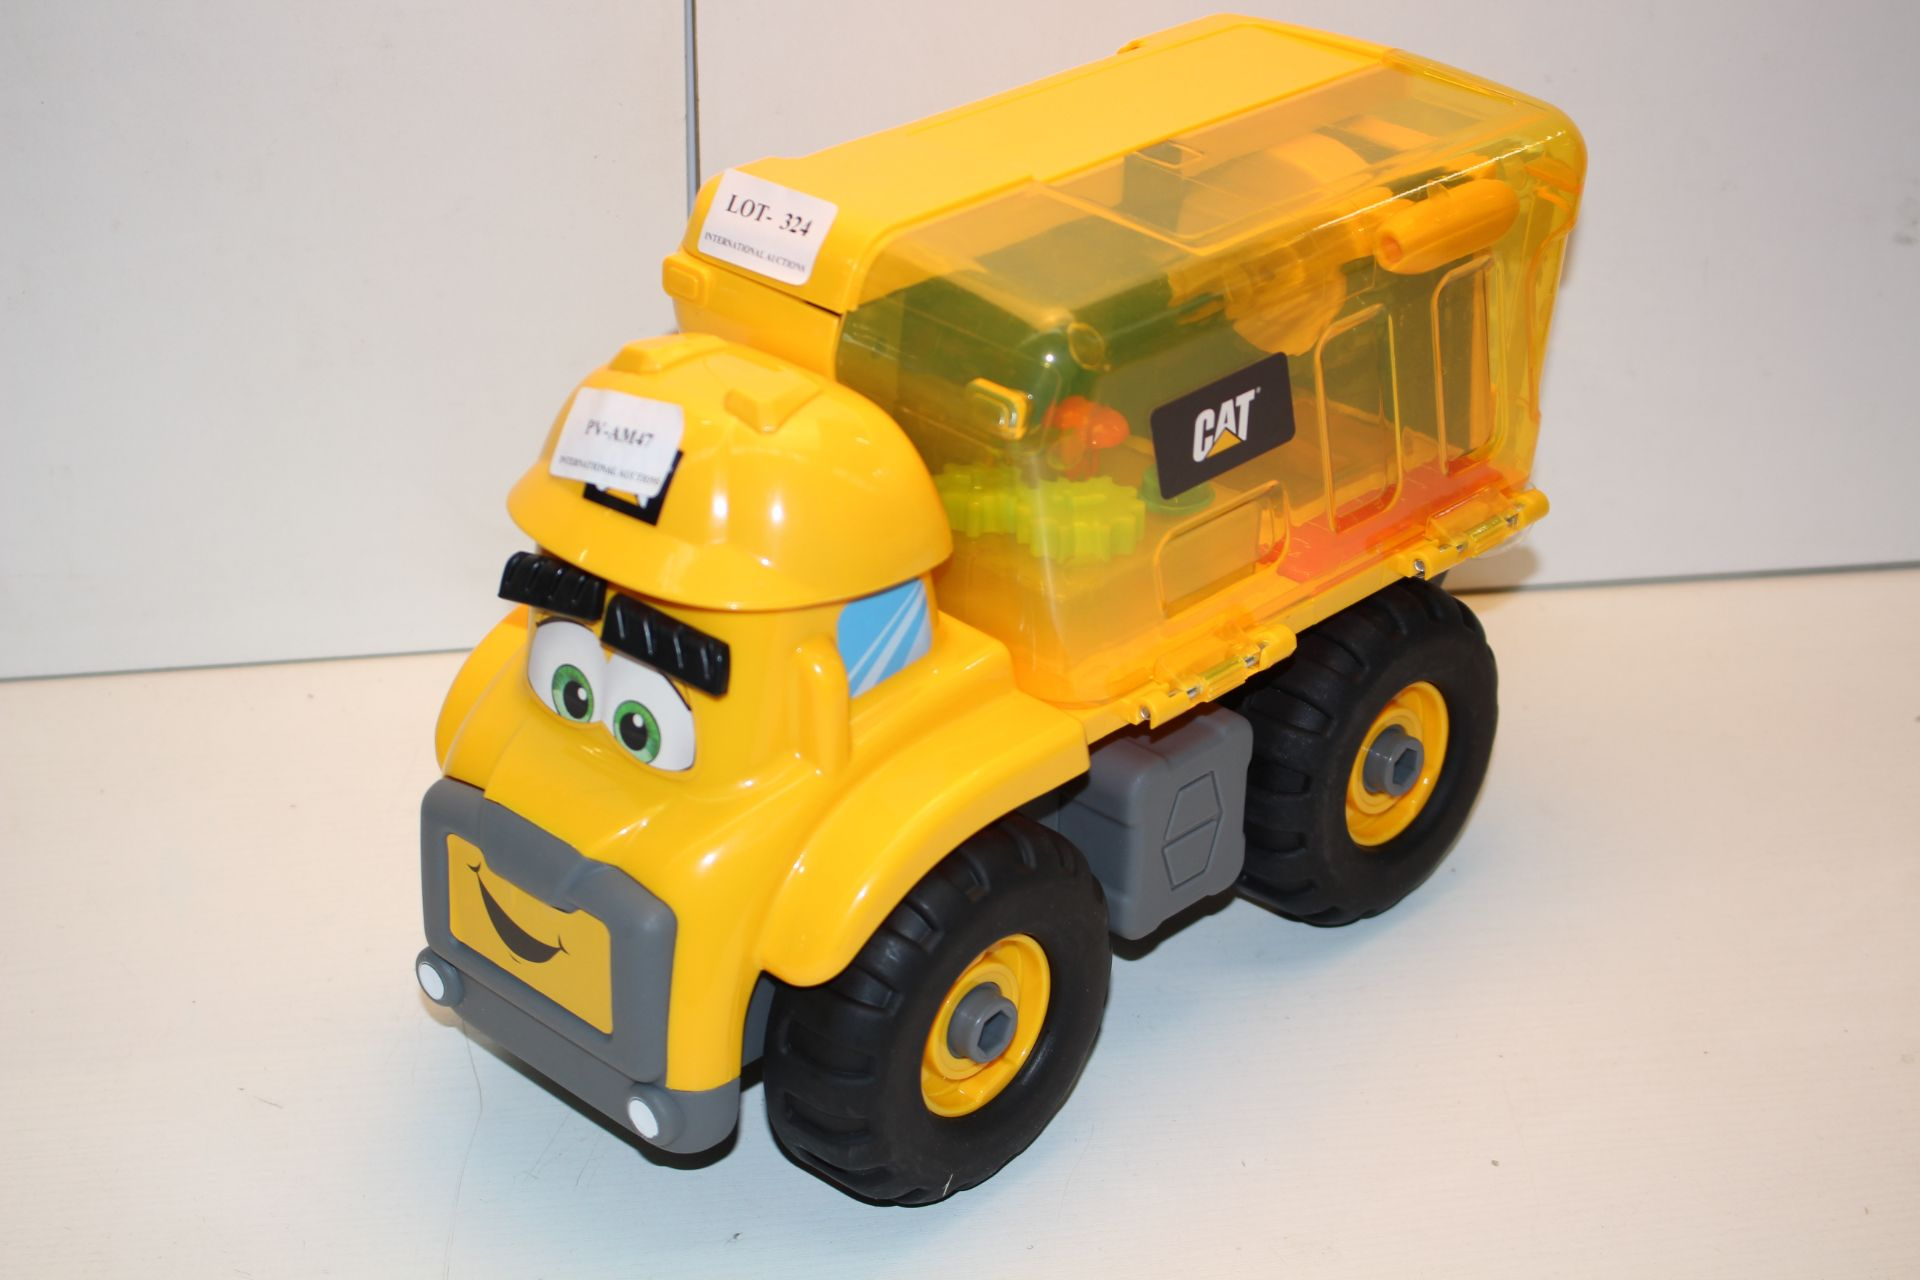 UNBOXED TOMY TRUCK TOY Condition ReportAppraisal Available on Request- All Items are Unchecked/